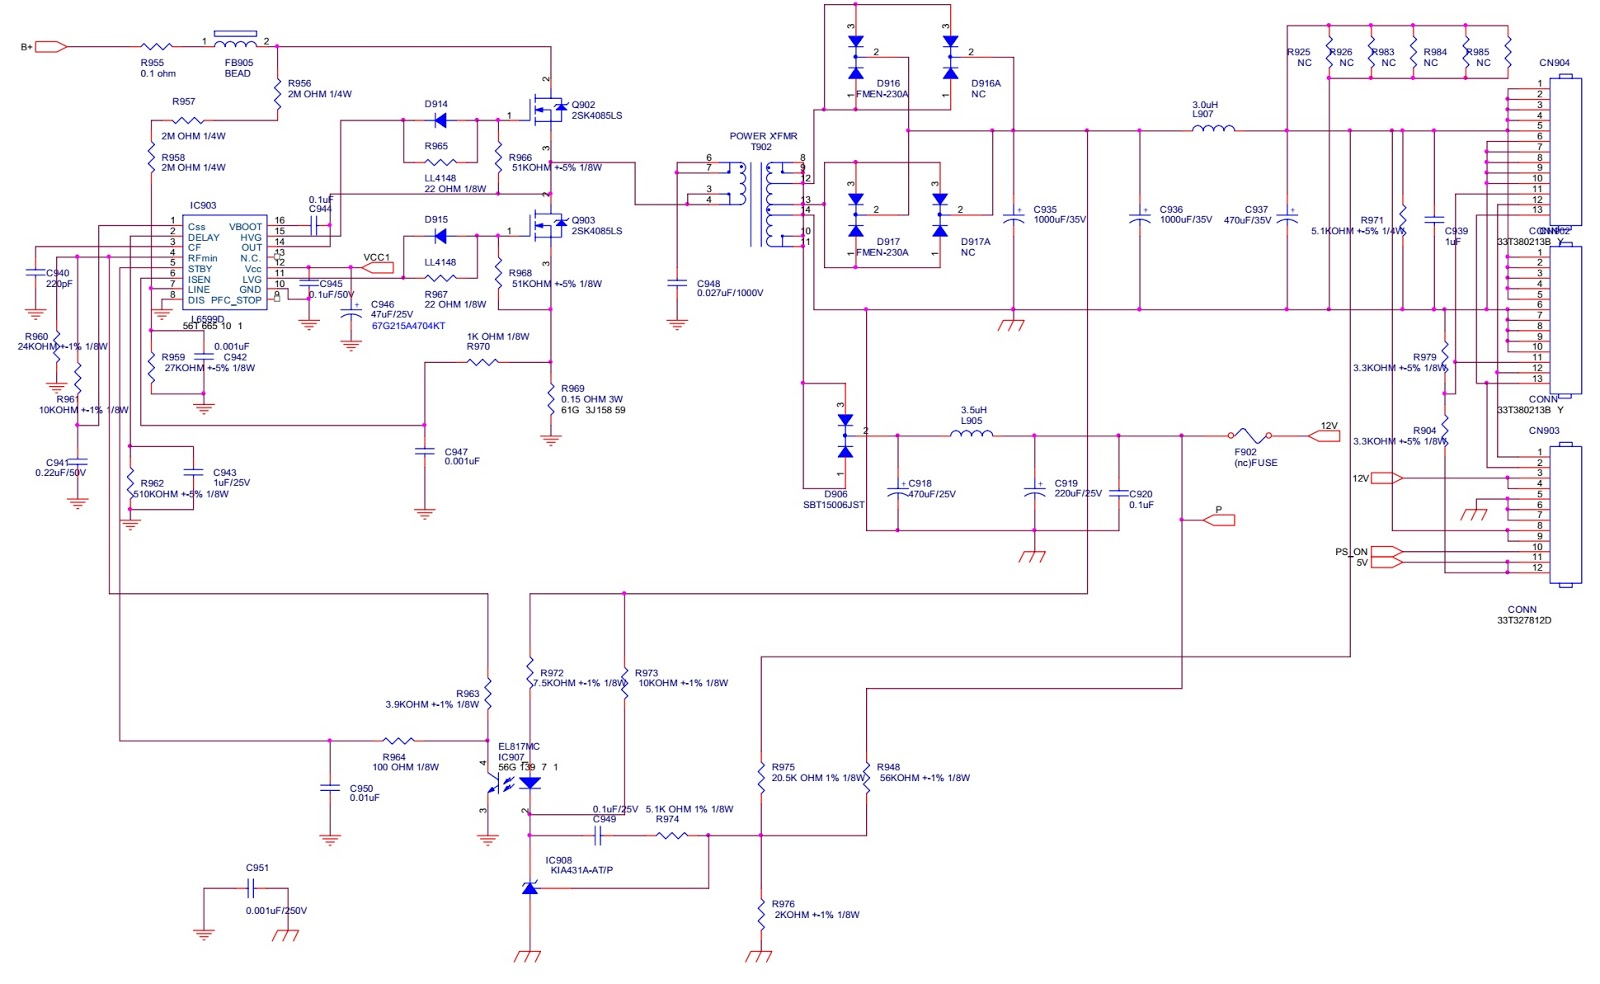 715t2802f Aoc L47h861 Lcd Tv Power Supply Schematic Factory Mode Universal Remote Circuit Smps Diagram Four Digit